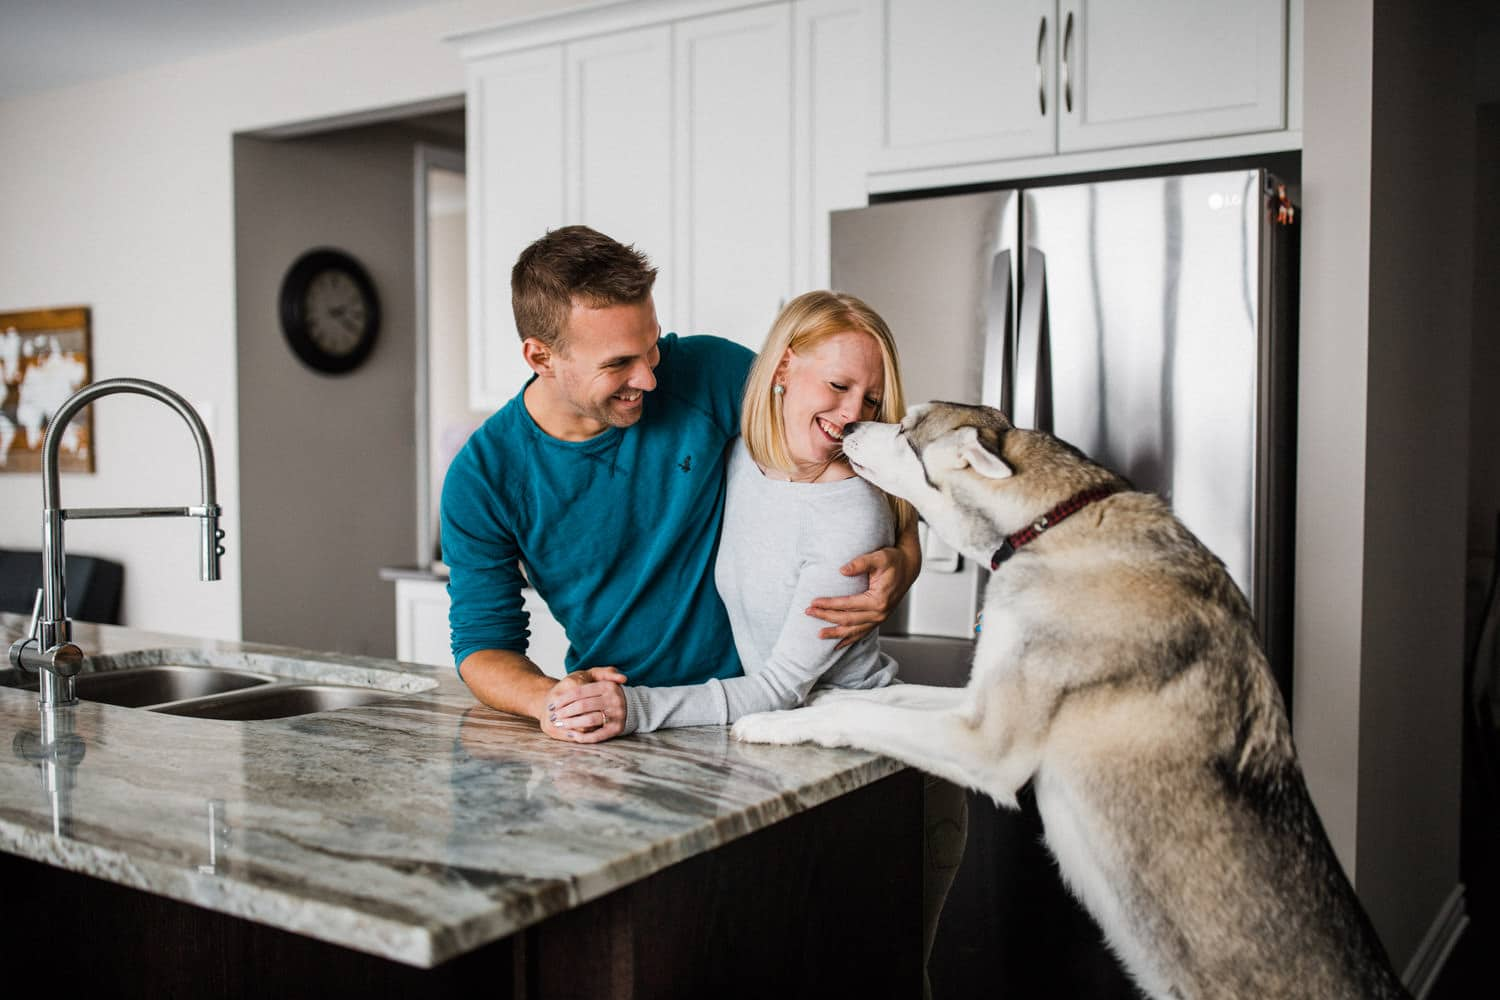 husky dog leans up on kitchen countertop to kiss owner - at home engagement